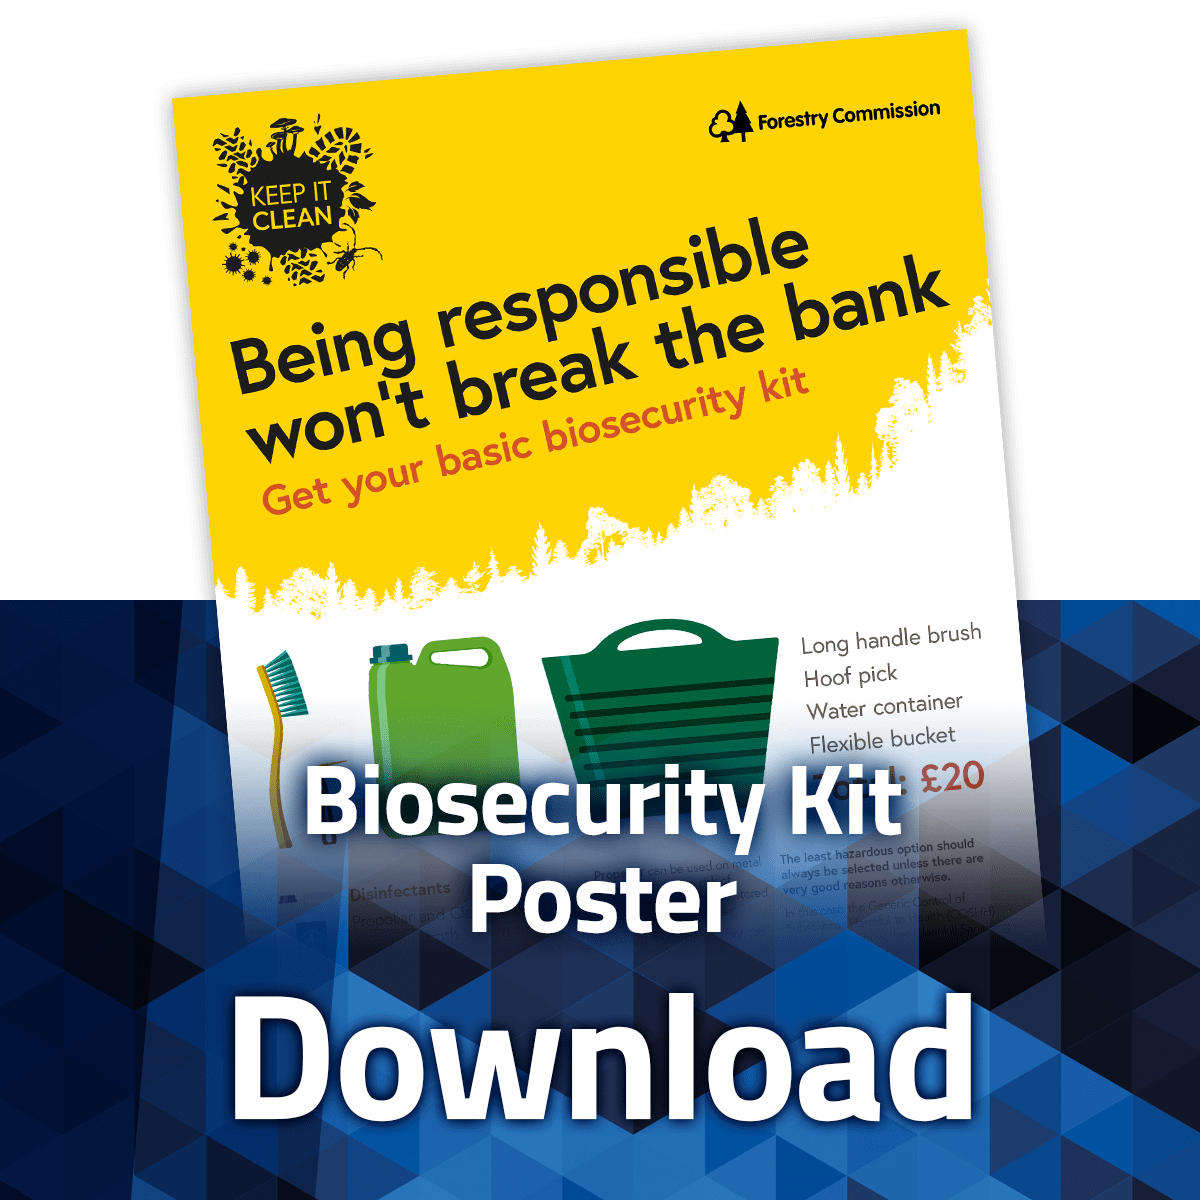 Download the Biosecurity Kit Poster